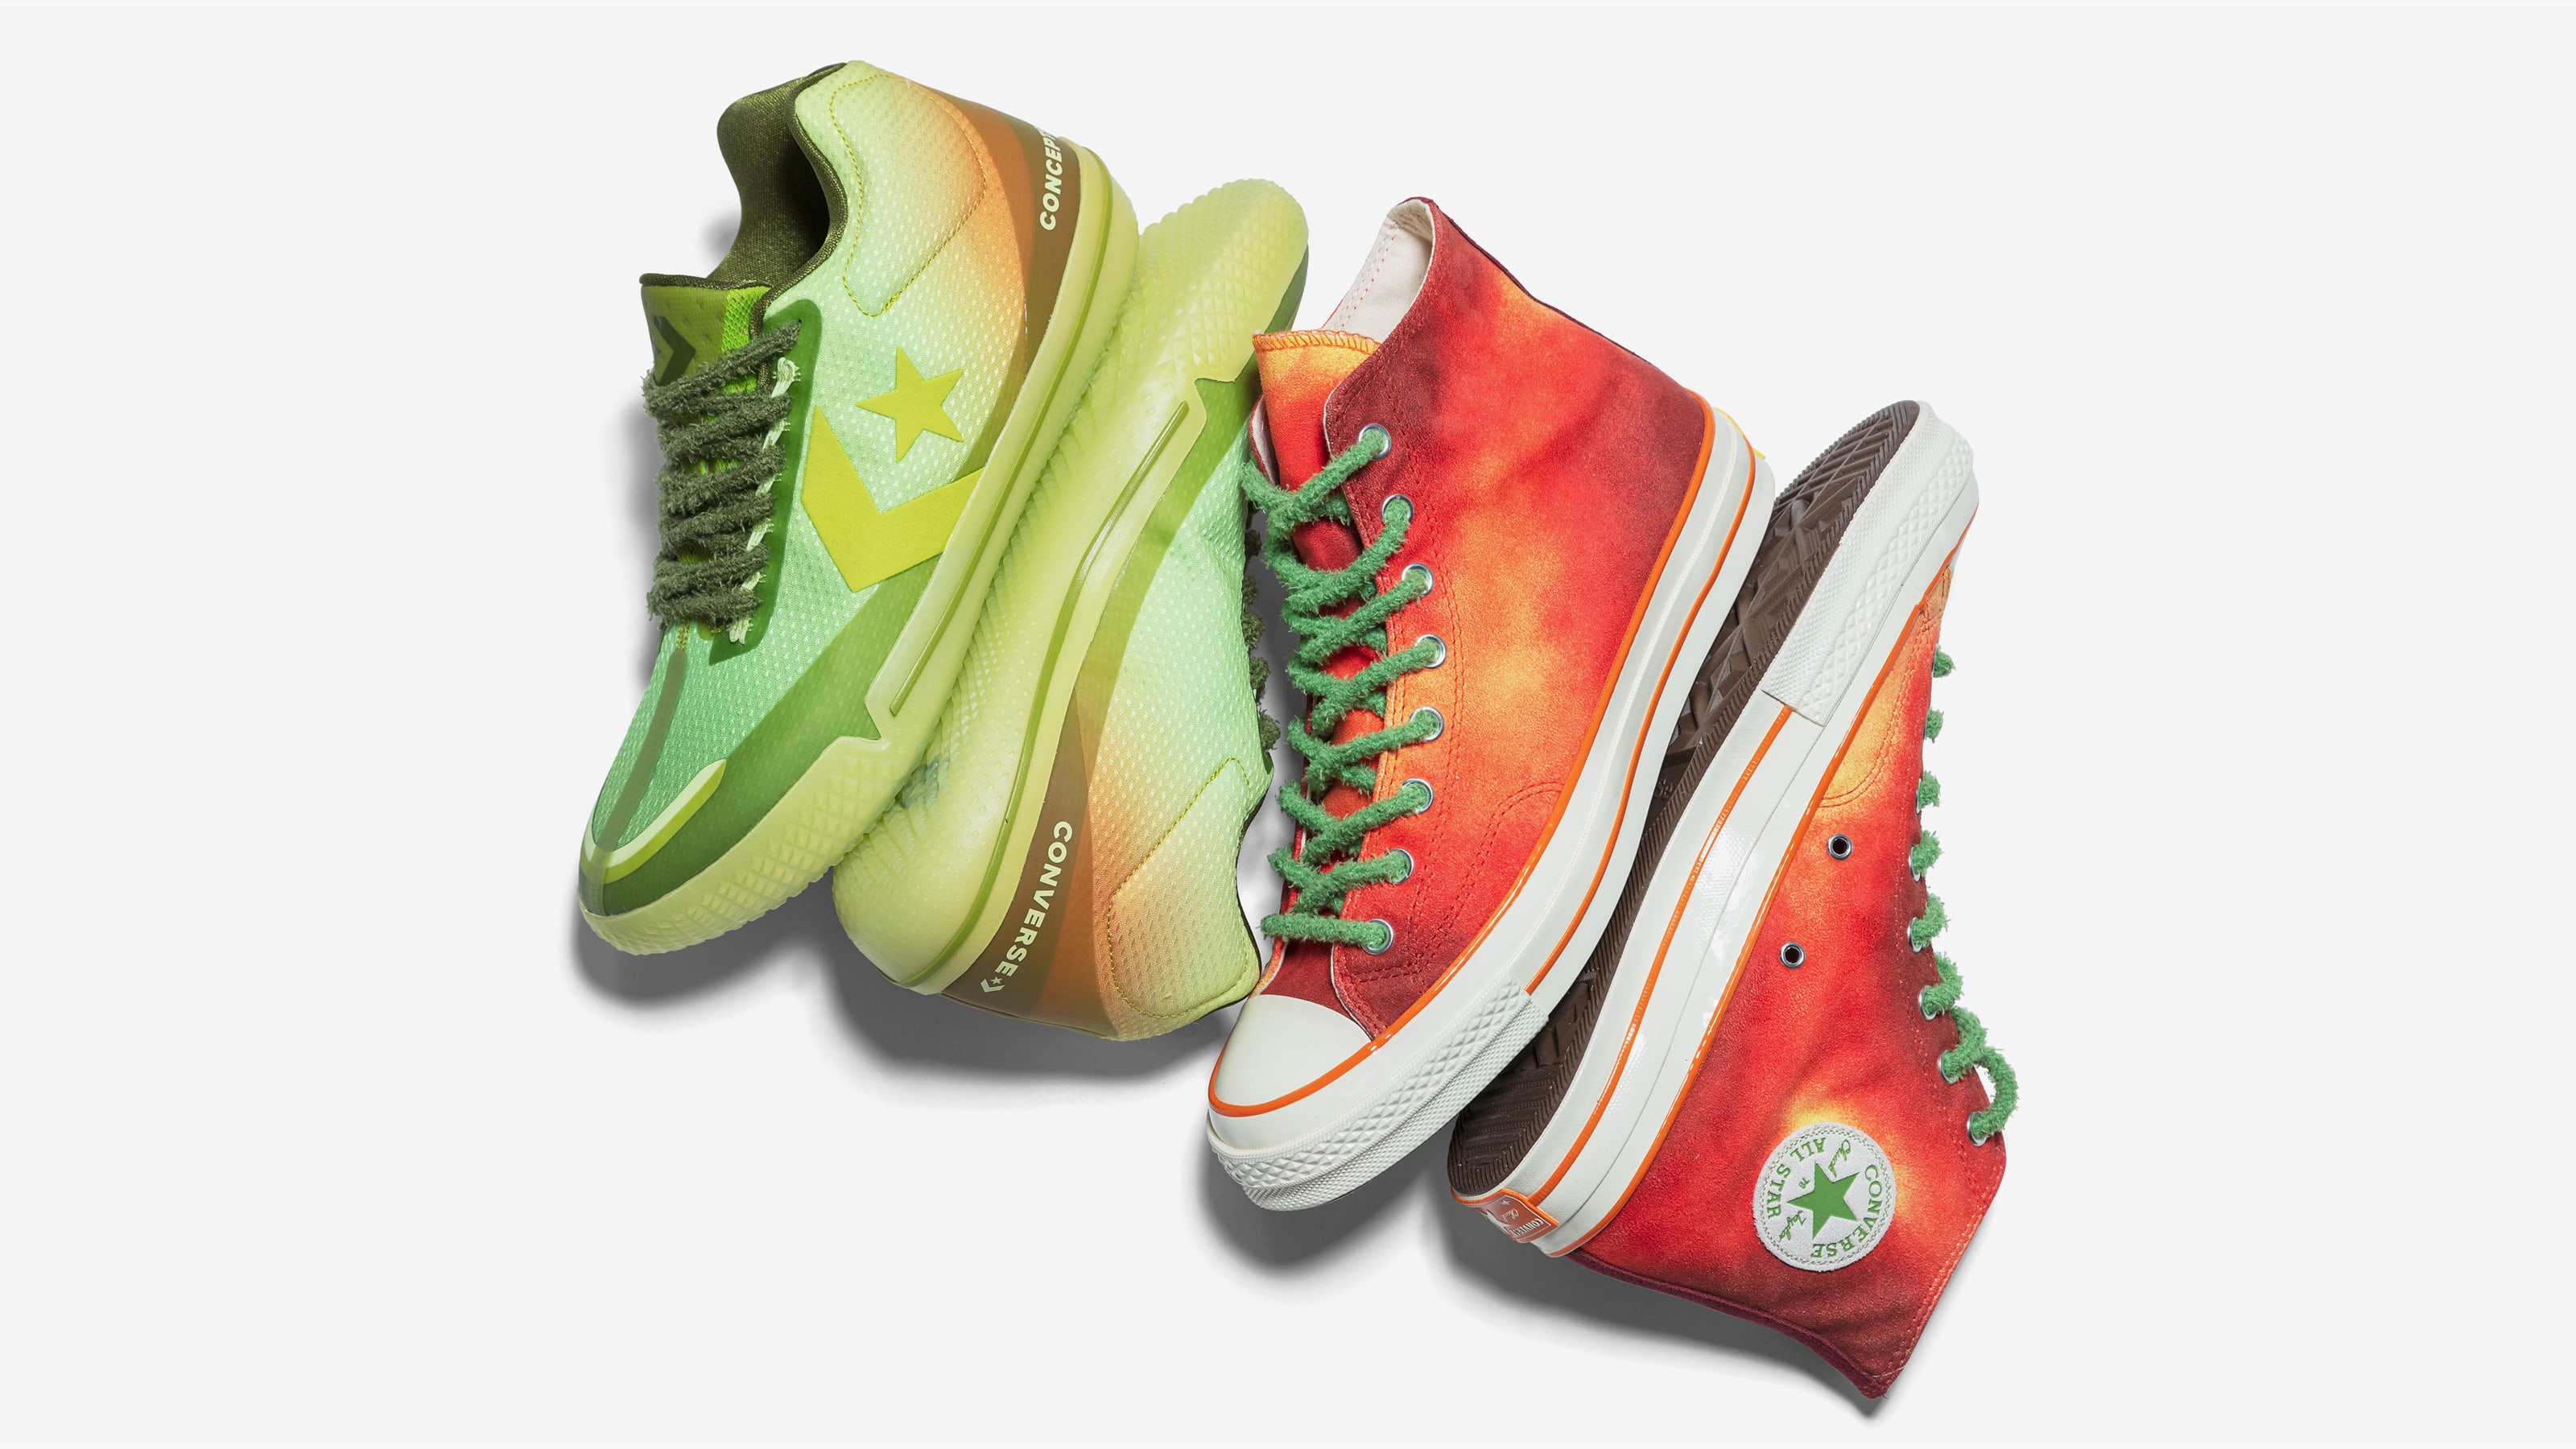 Concepts x Converse 'Southern Flame' Collection